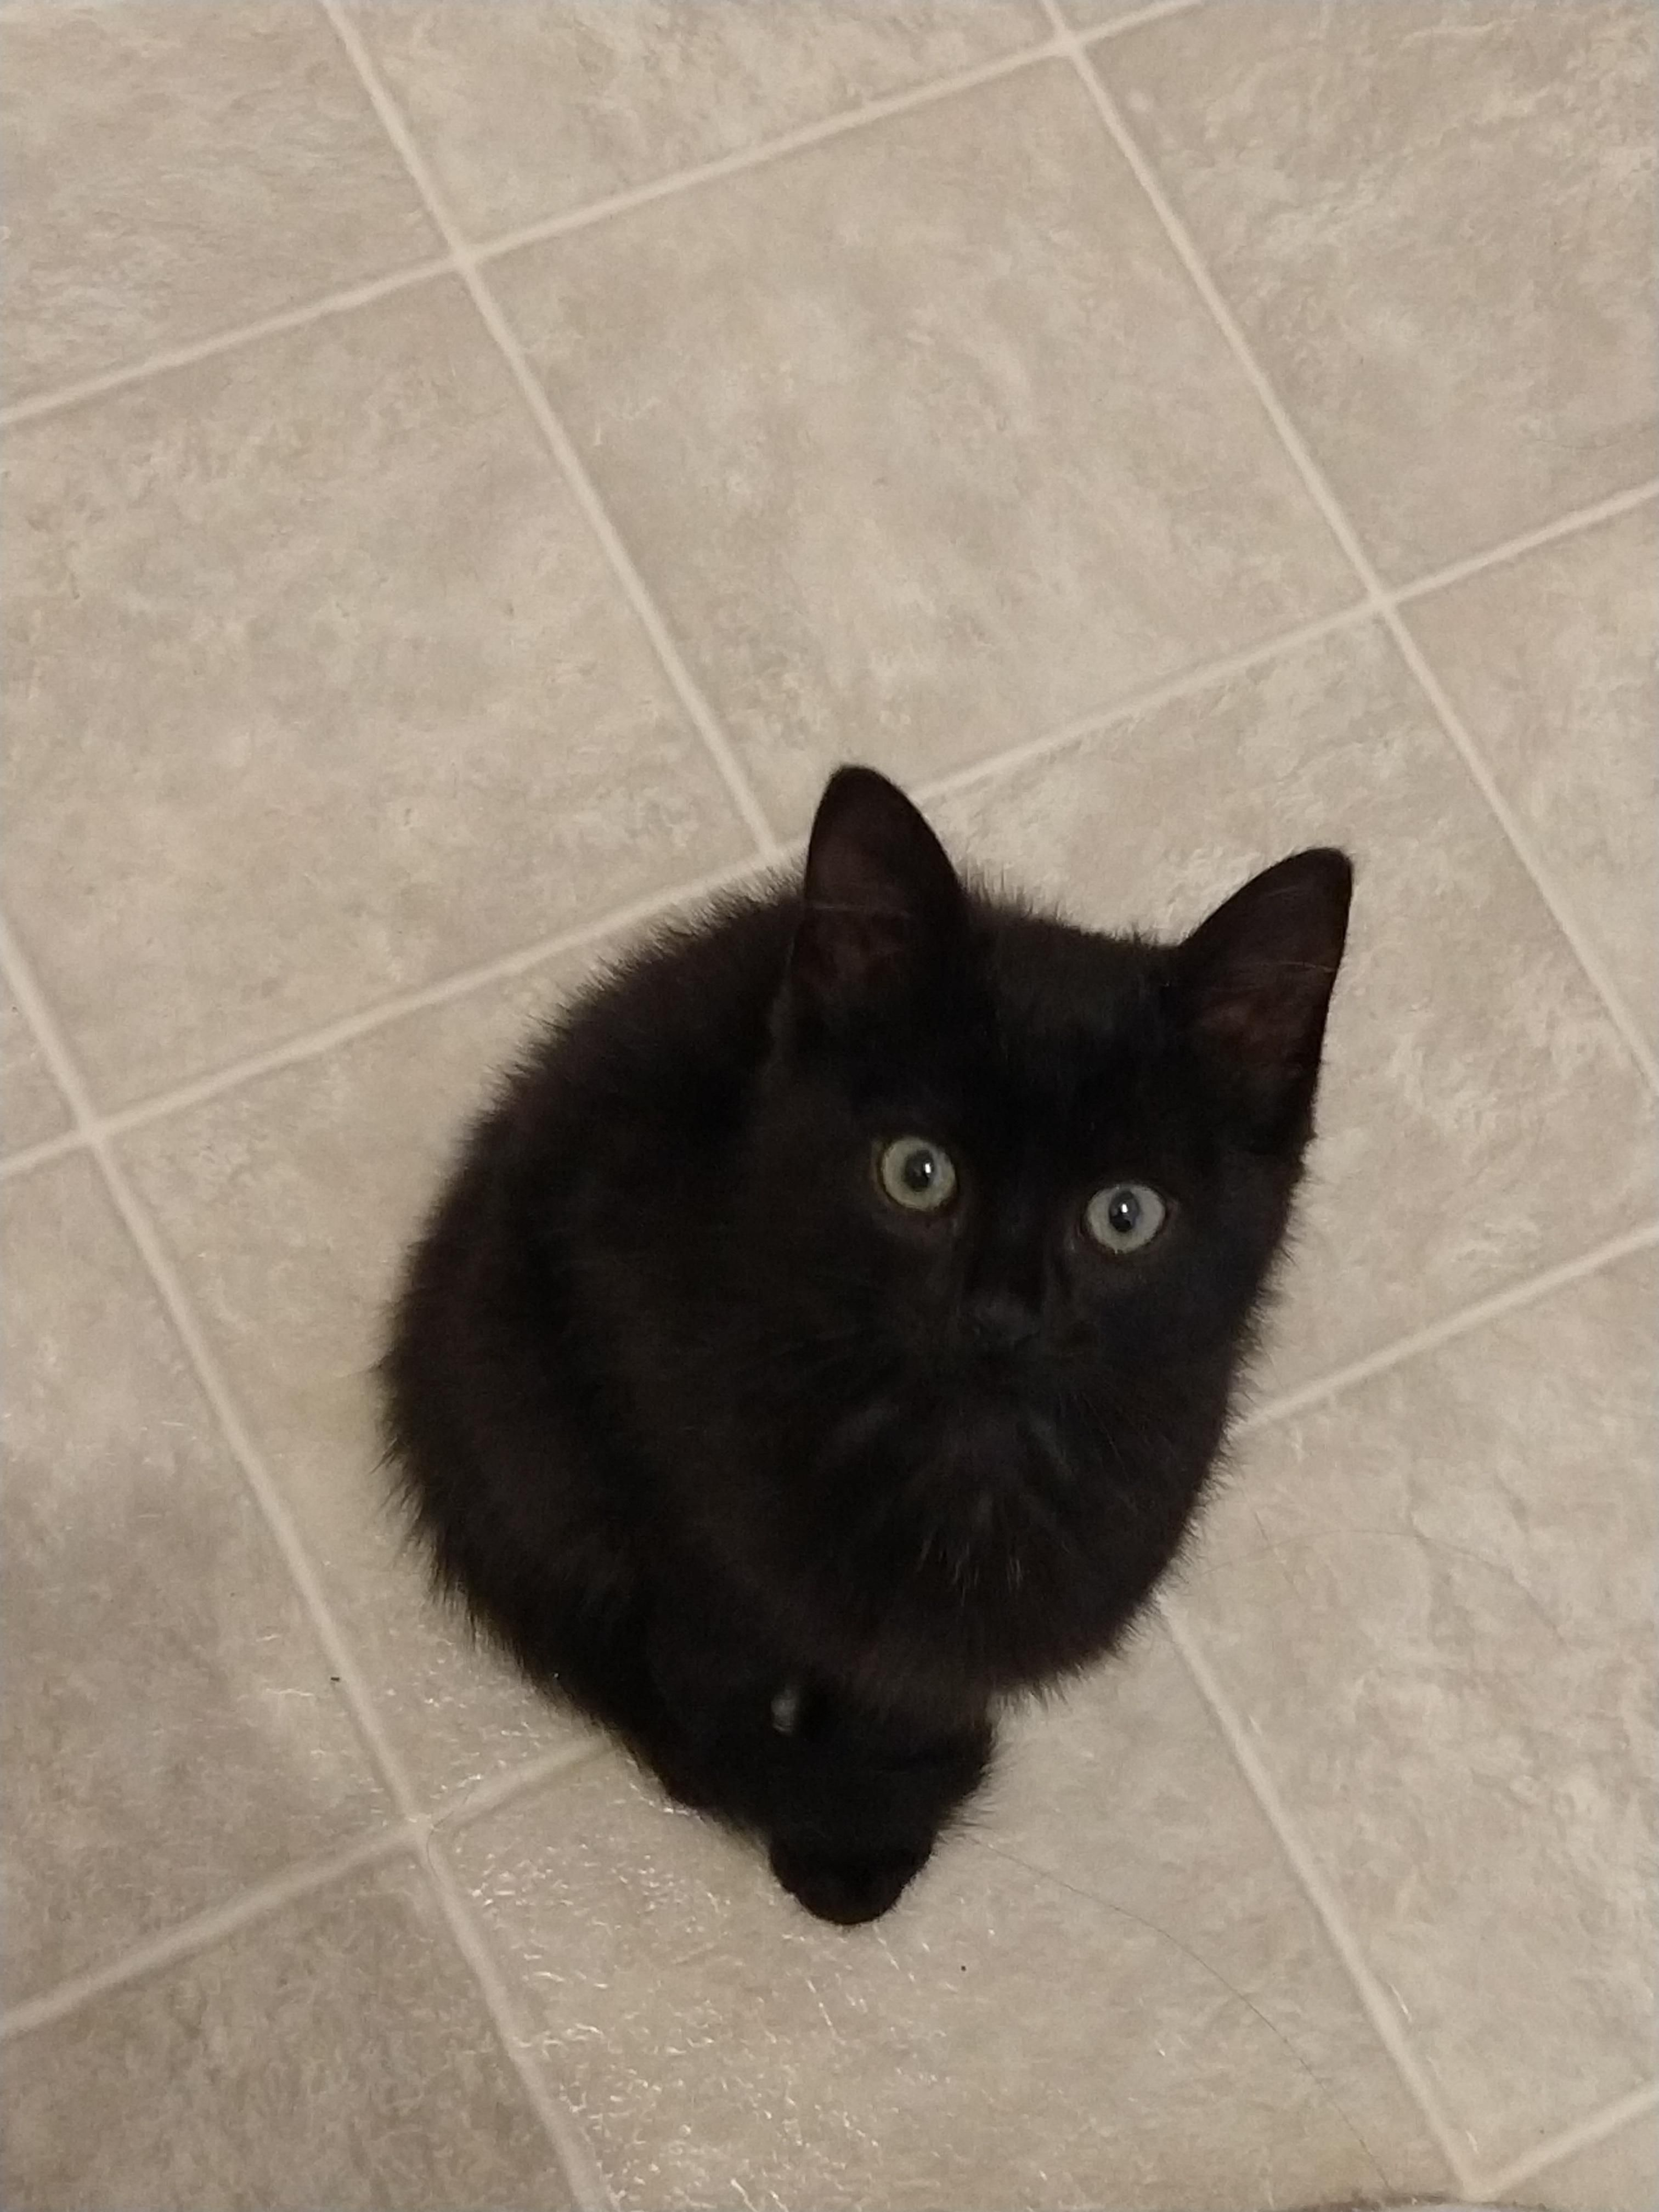 Oscar My 9 Week Old Furball Cute Cats And Kittens Cats Kittens